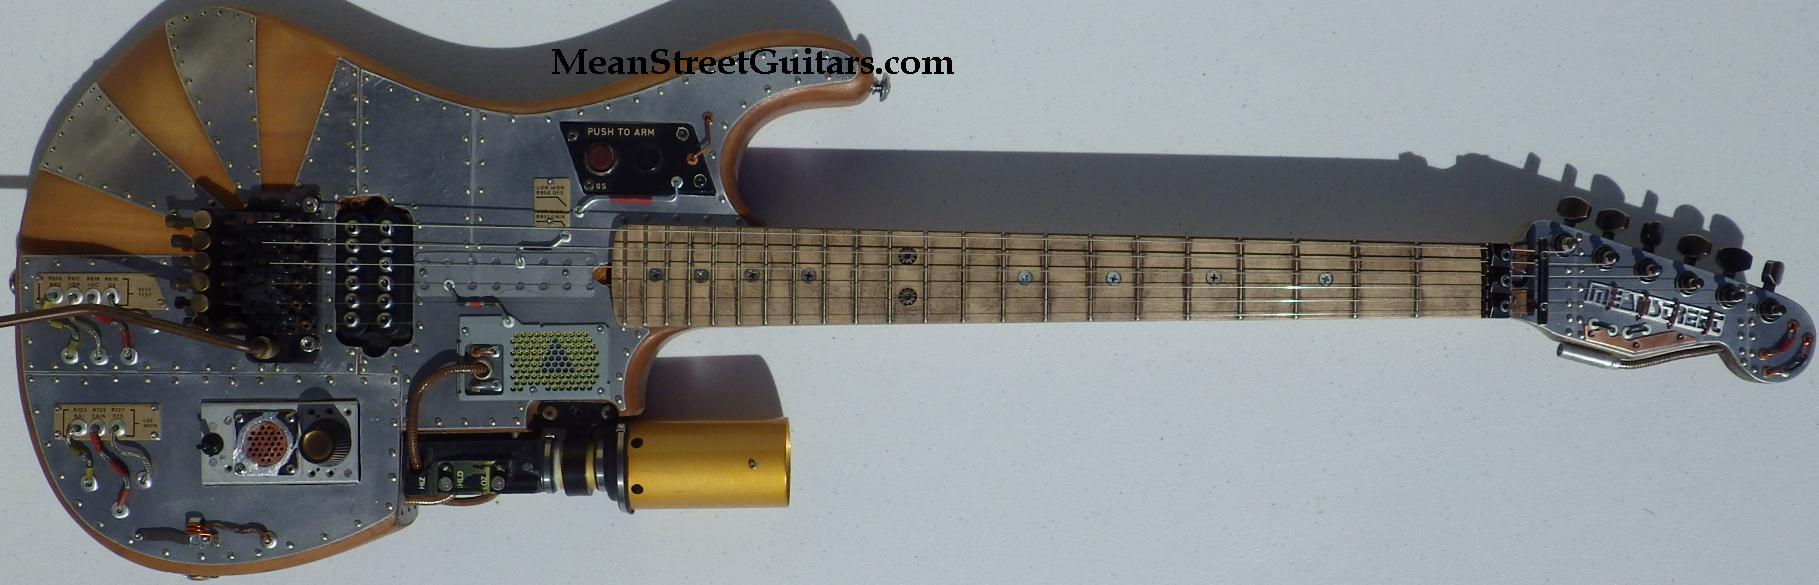 Mean Street Guitars Industrial Compensator pic 1.jpg